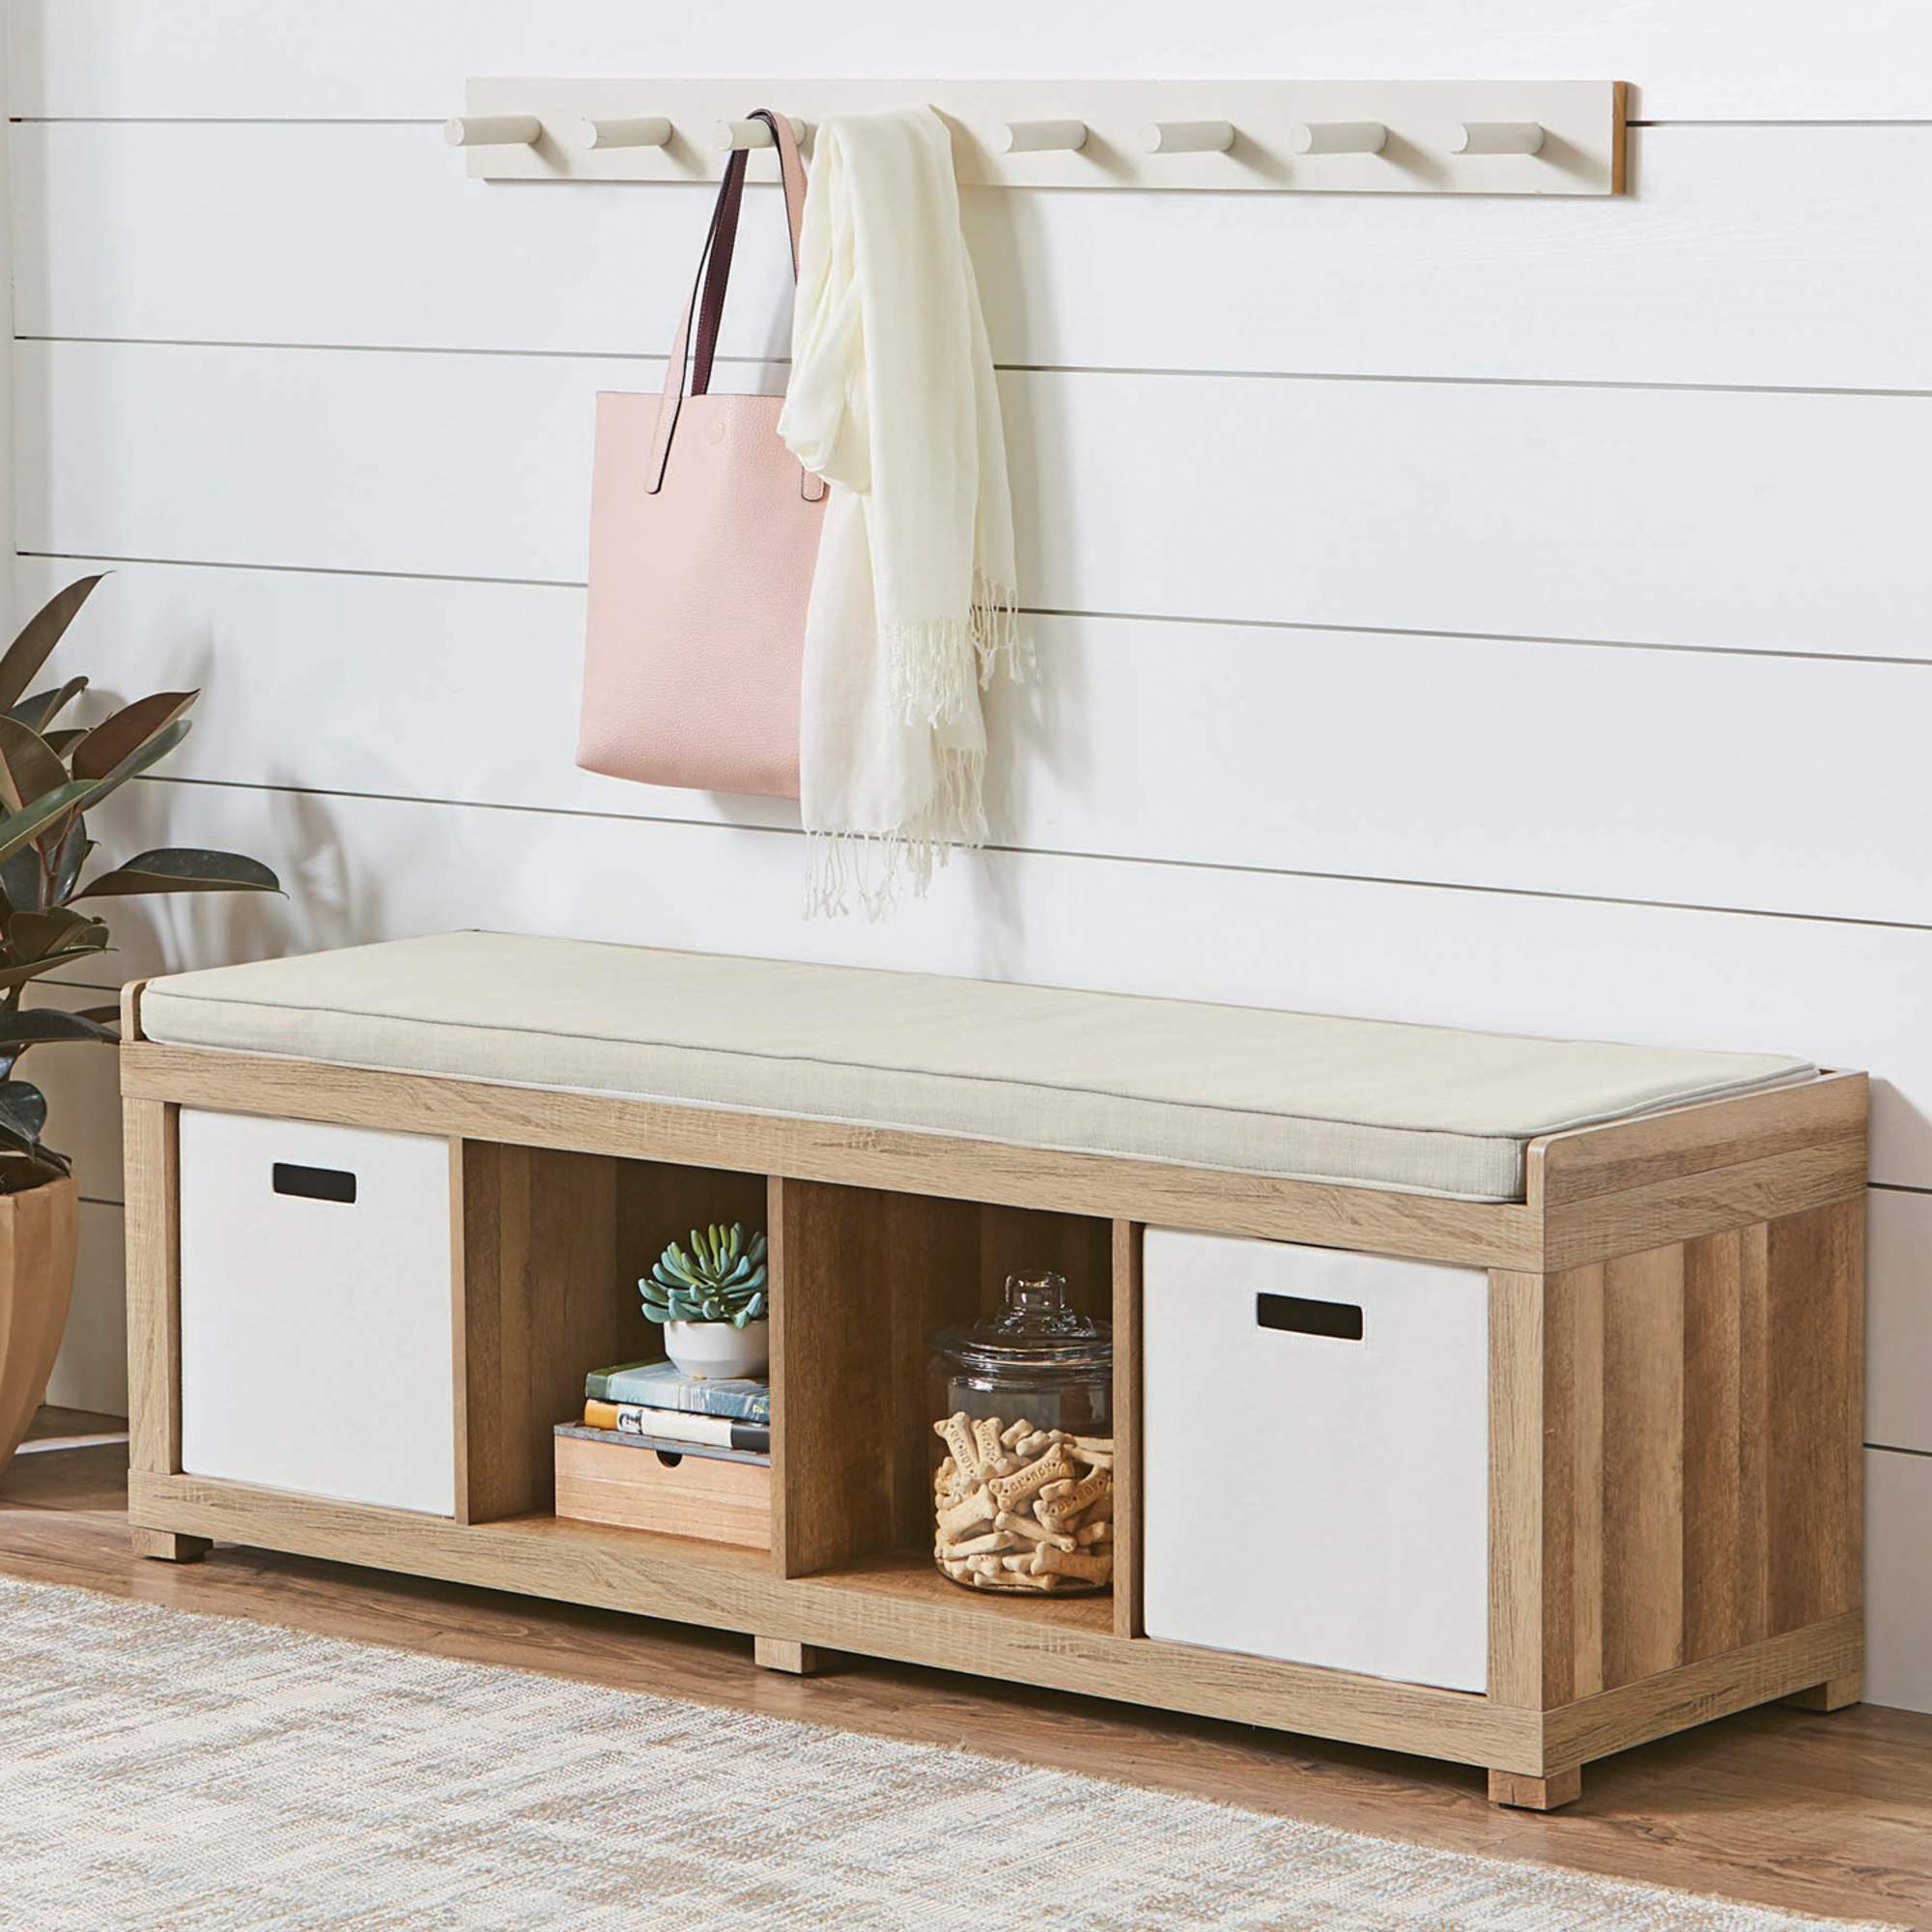 Modern Shoe Bench With Seat Cushion Storage Stool Rack Shelf Box Organizer Padded Cushion Toys Shoes Cabinets Home Decorations